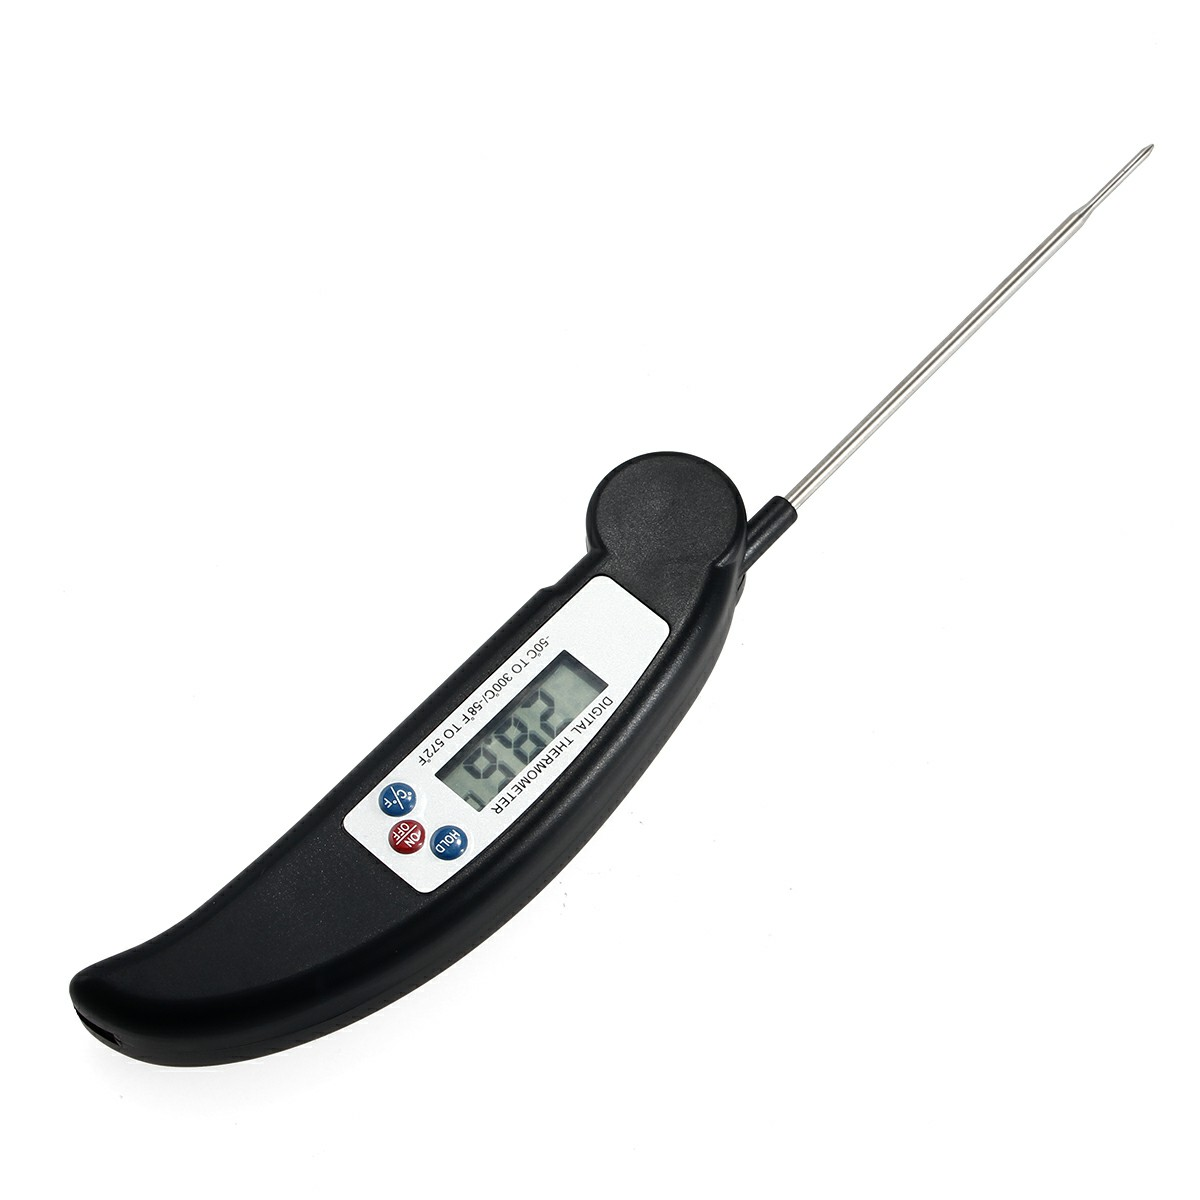 Digital Food Thermometer Probe for BBQ Meat Turkey Jam - Black